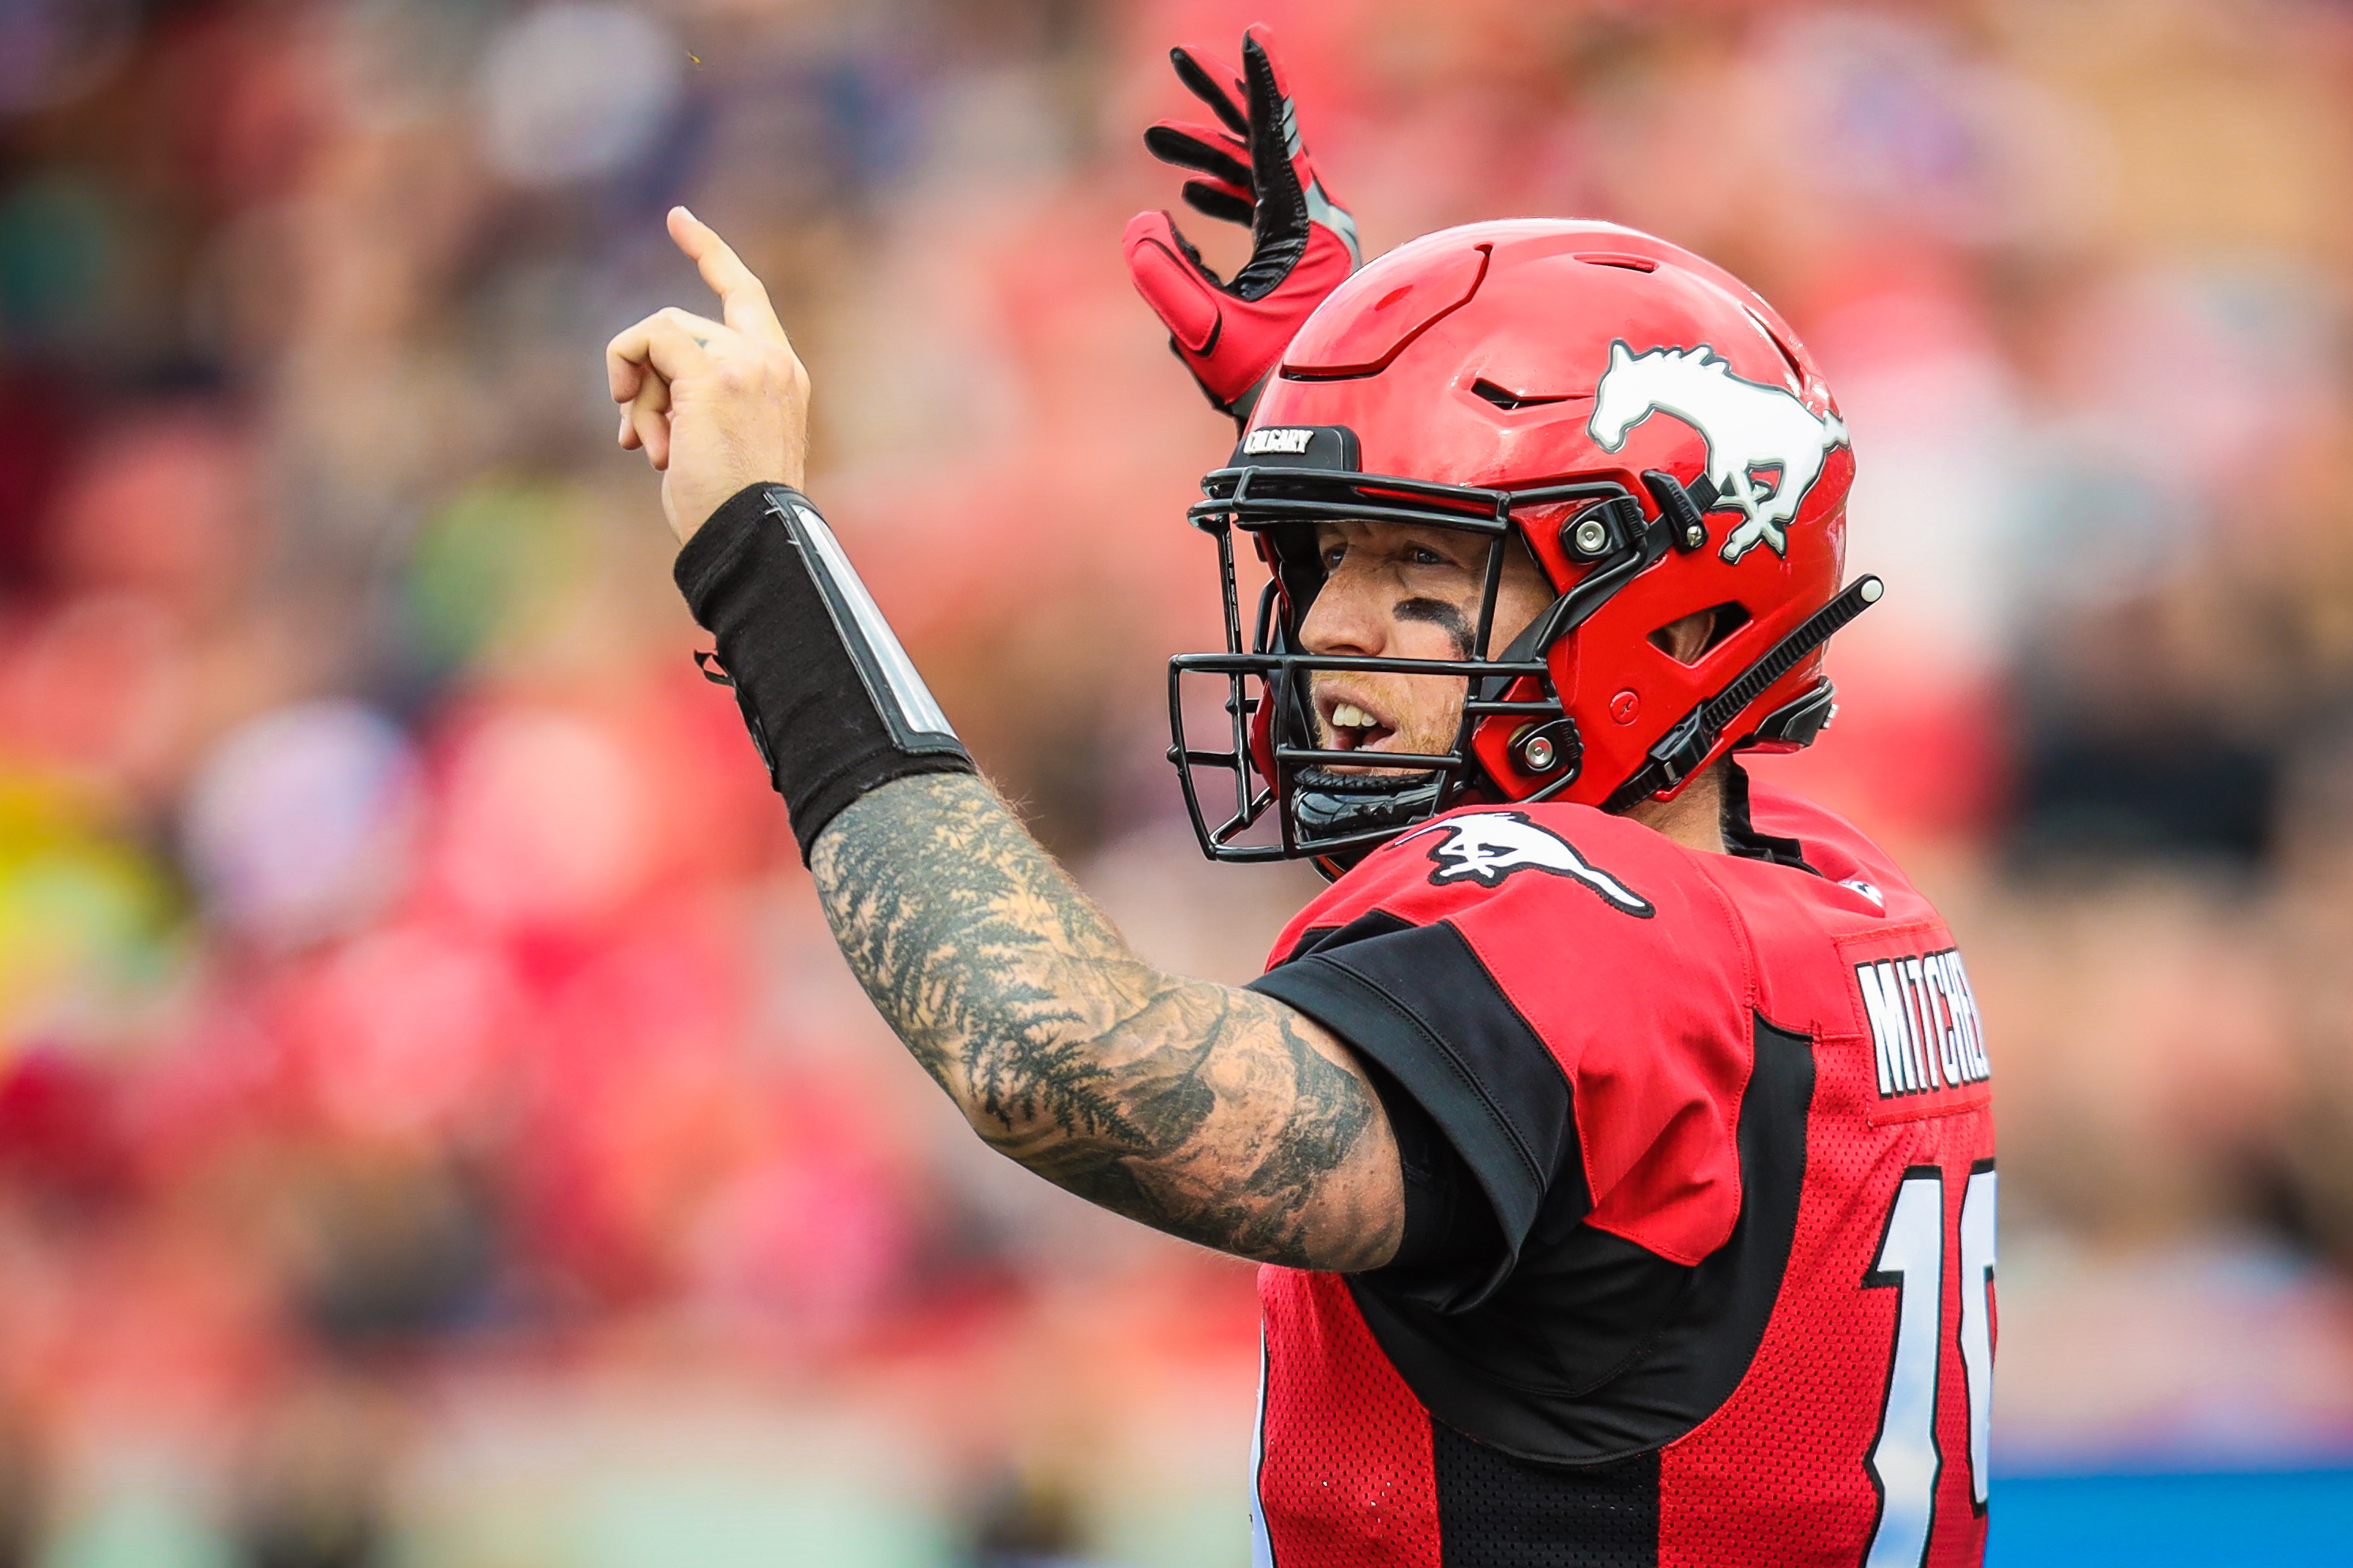 BC Lions vs Calgary Stampeders Prediction, 8/12/2021 CFL Pick, Tips and Odds